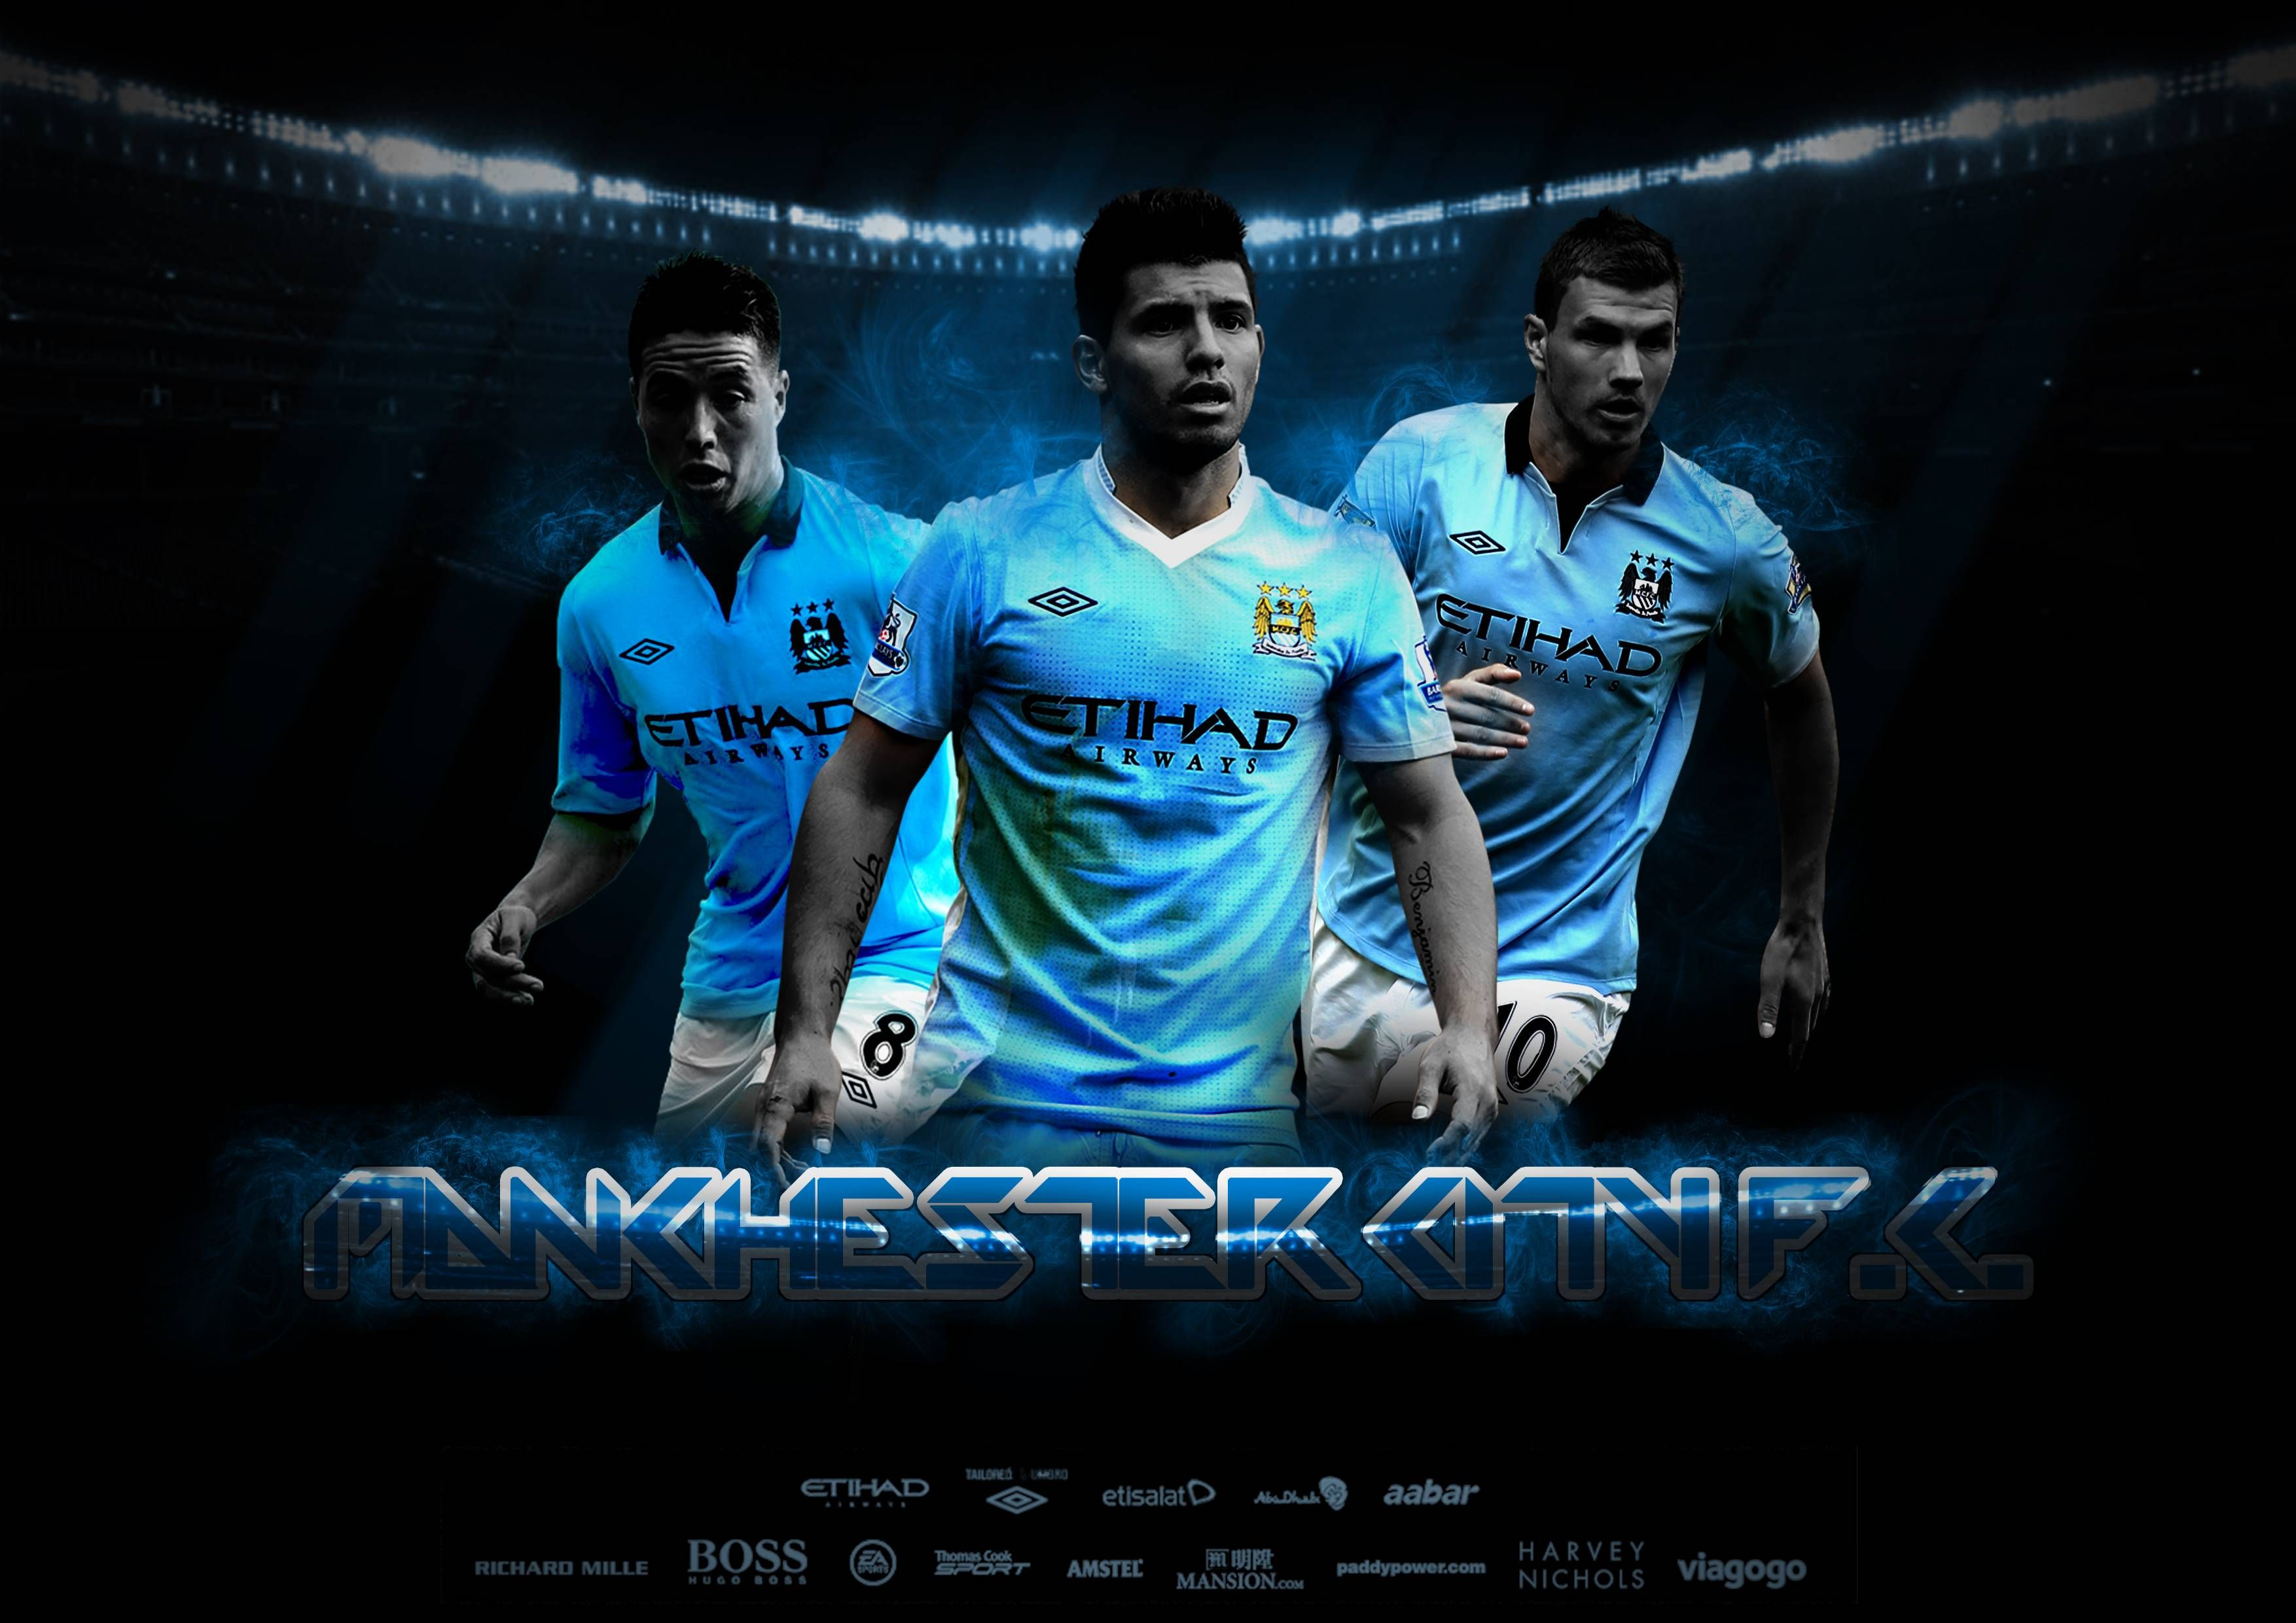 Manchester city wallpaper collection for free download hd manchester city wallpaper collection for free download voltagebd Gallery